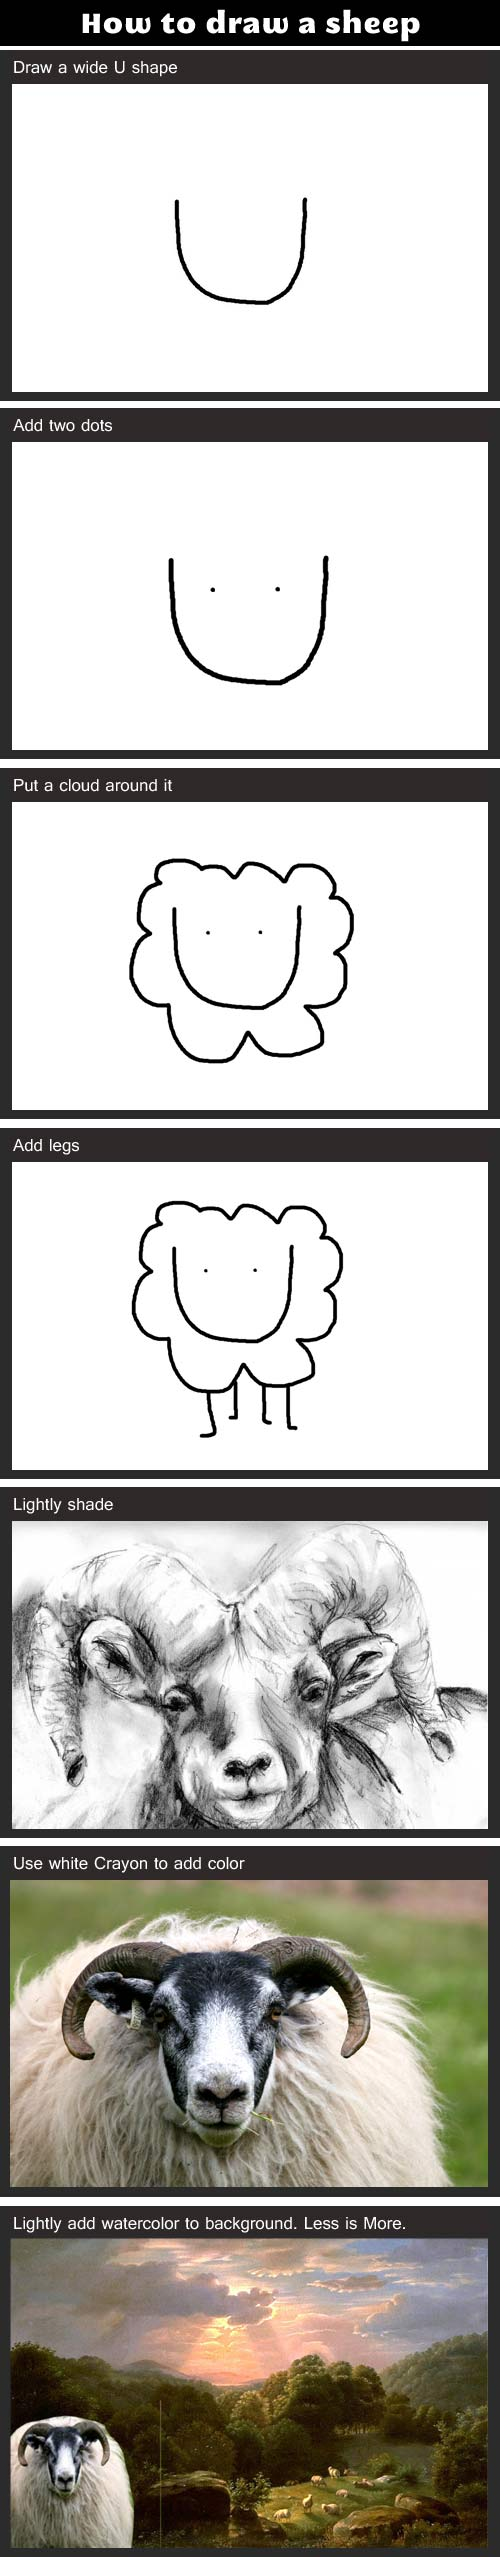 How to draw a sheep… | Funny stuff | Pinterest | Funny sheep ...